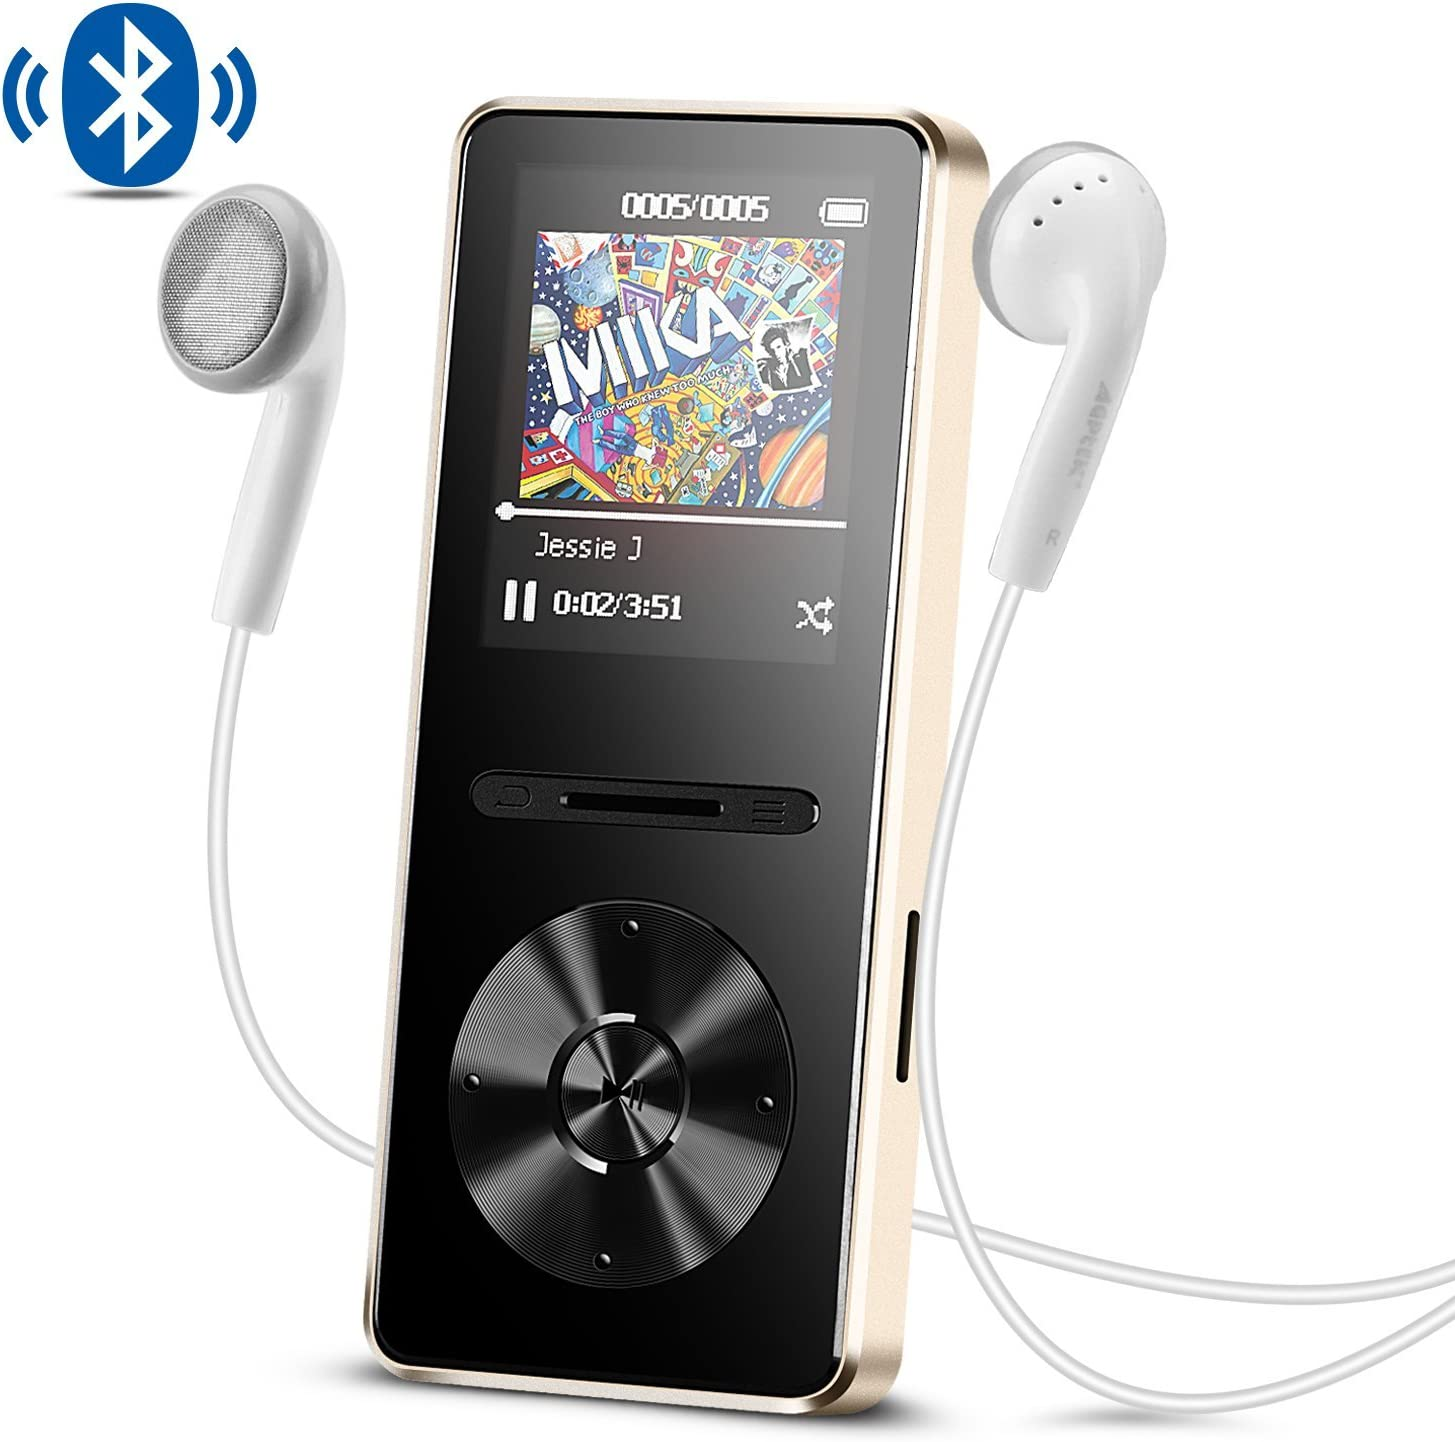 Reproductor Mp3 con Bluetooth 4.0, 8 GB Metal Reproductor de música de Hi-Fi Lossless Sonido con Radio FM, Color Dorado- AGPTEK A29TG